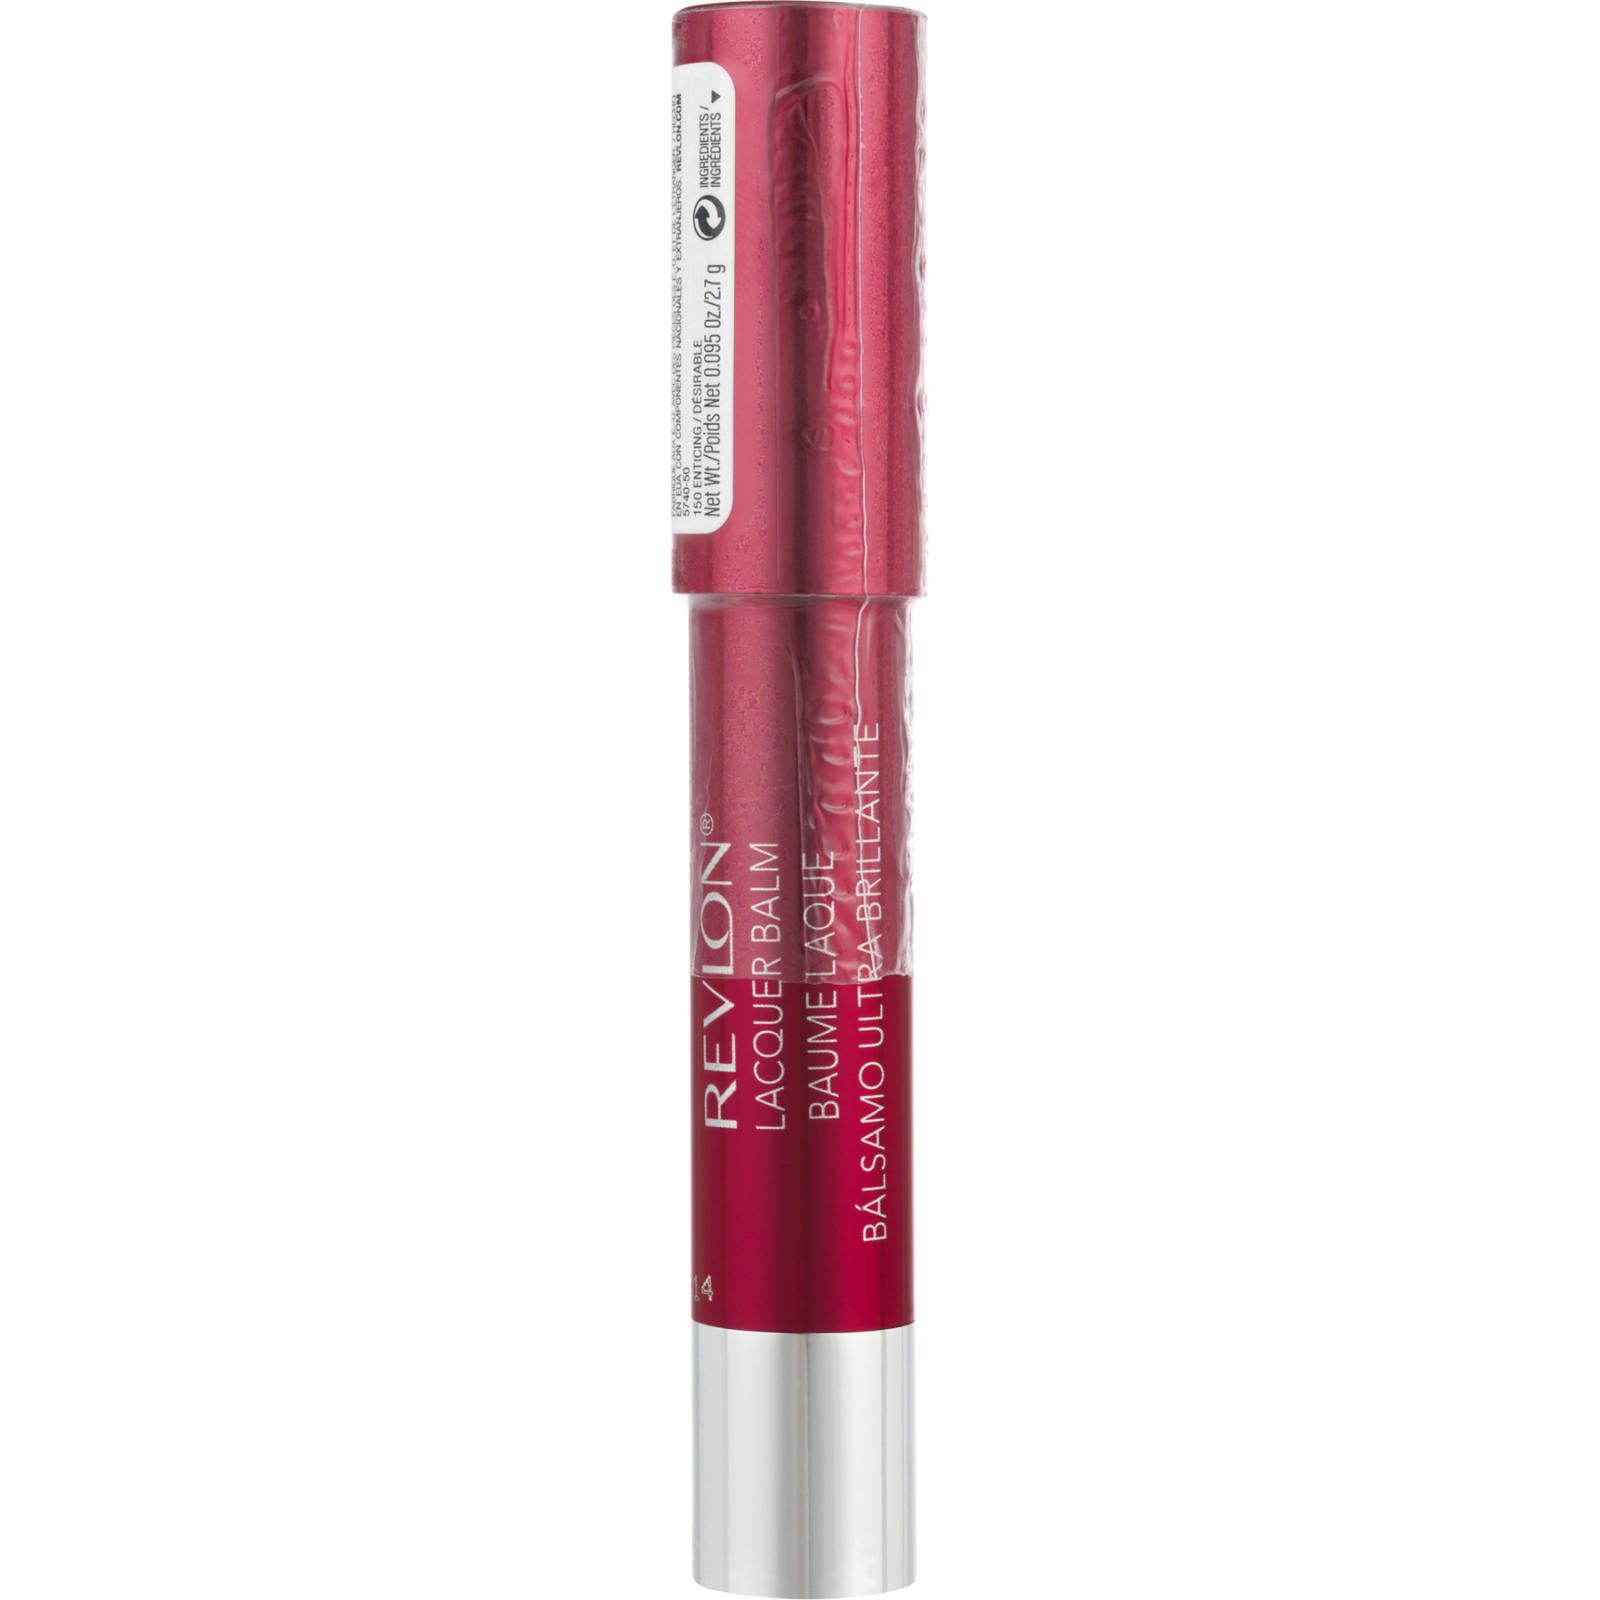 Revlon Lacquer Balm, Enticing